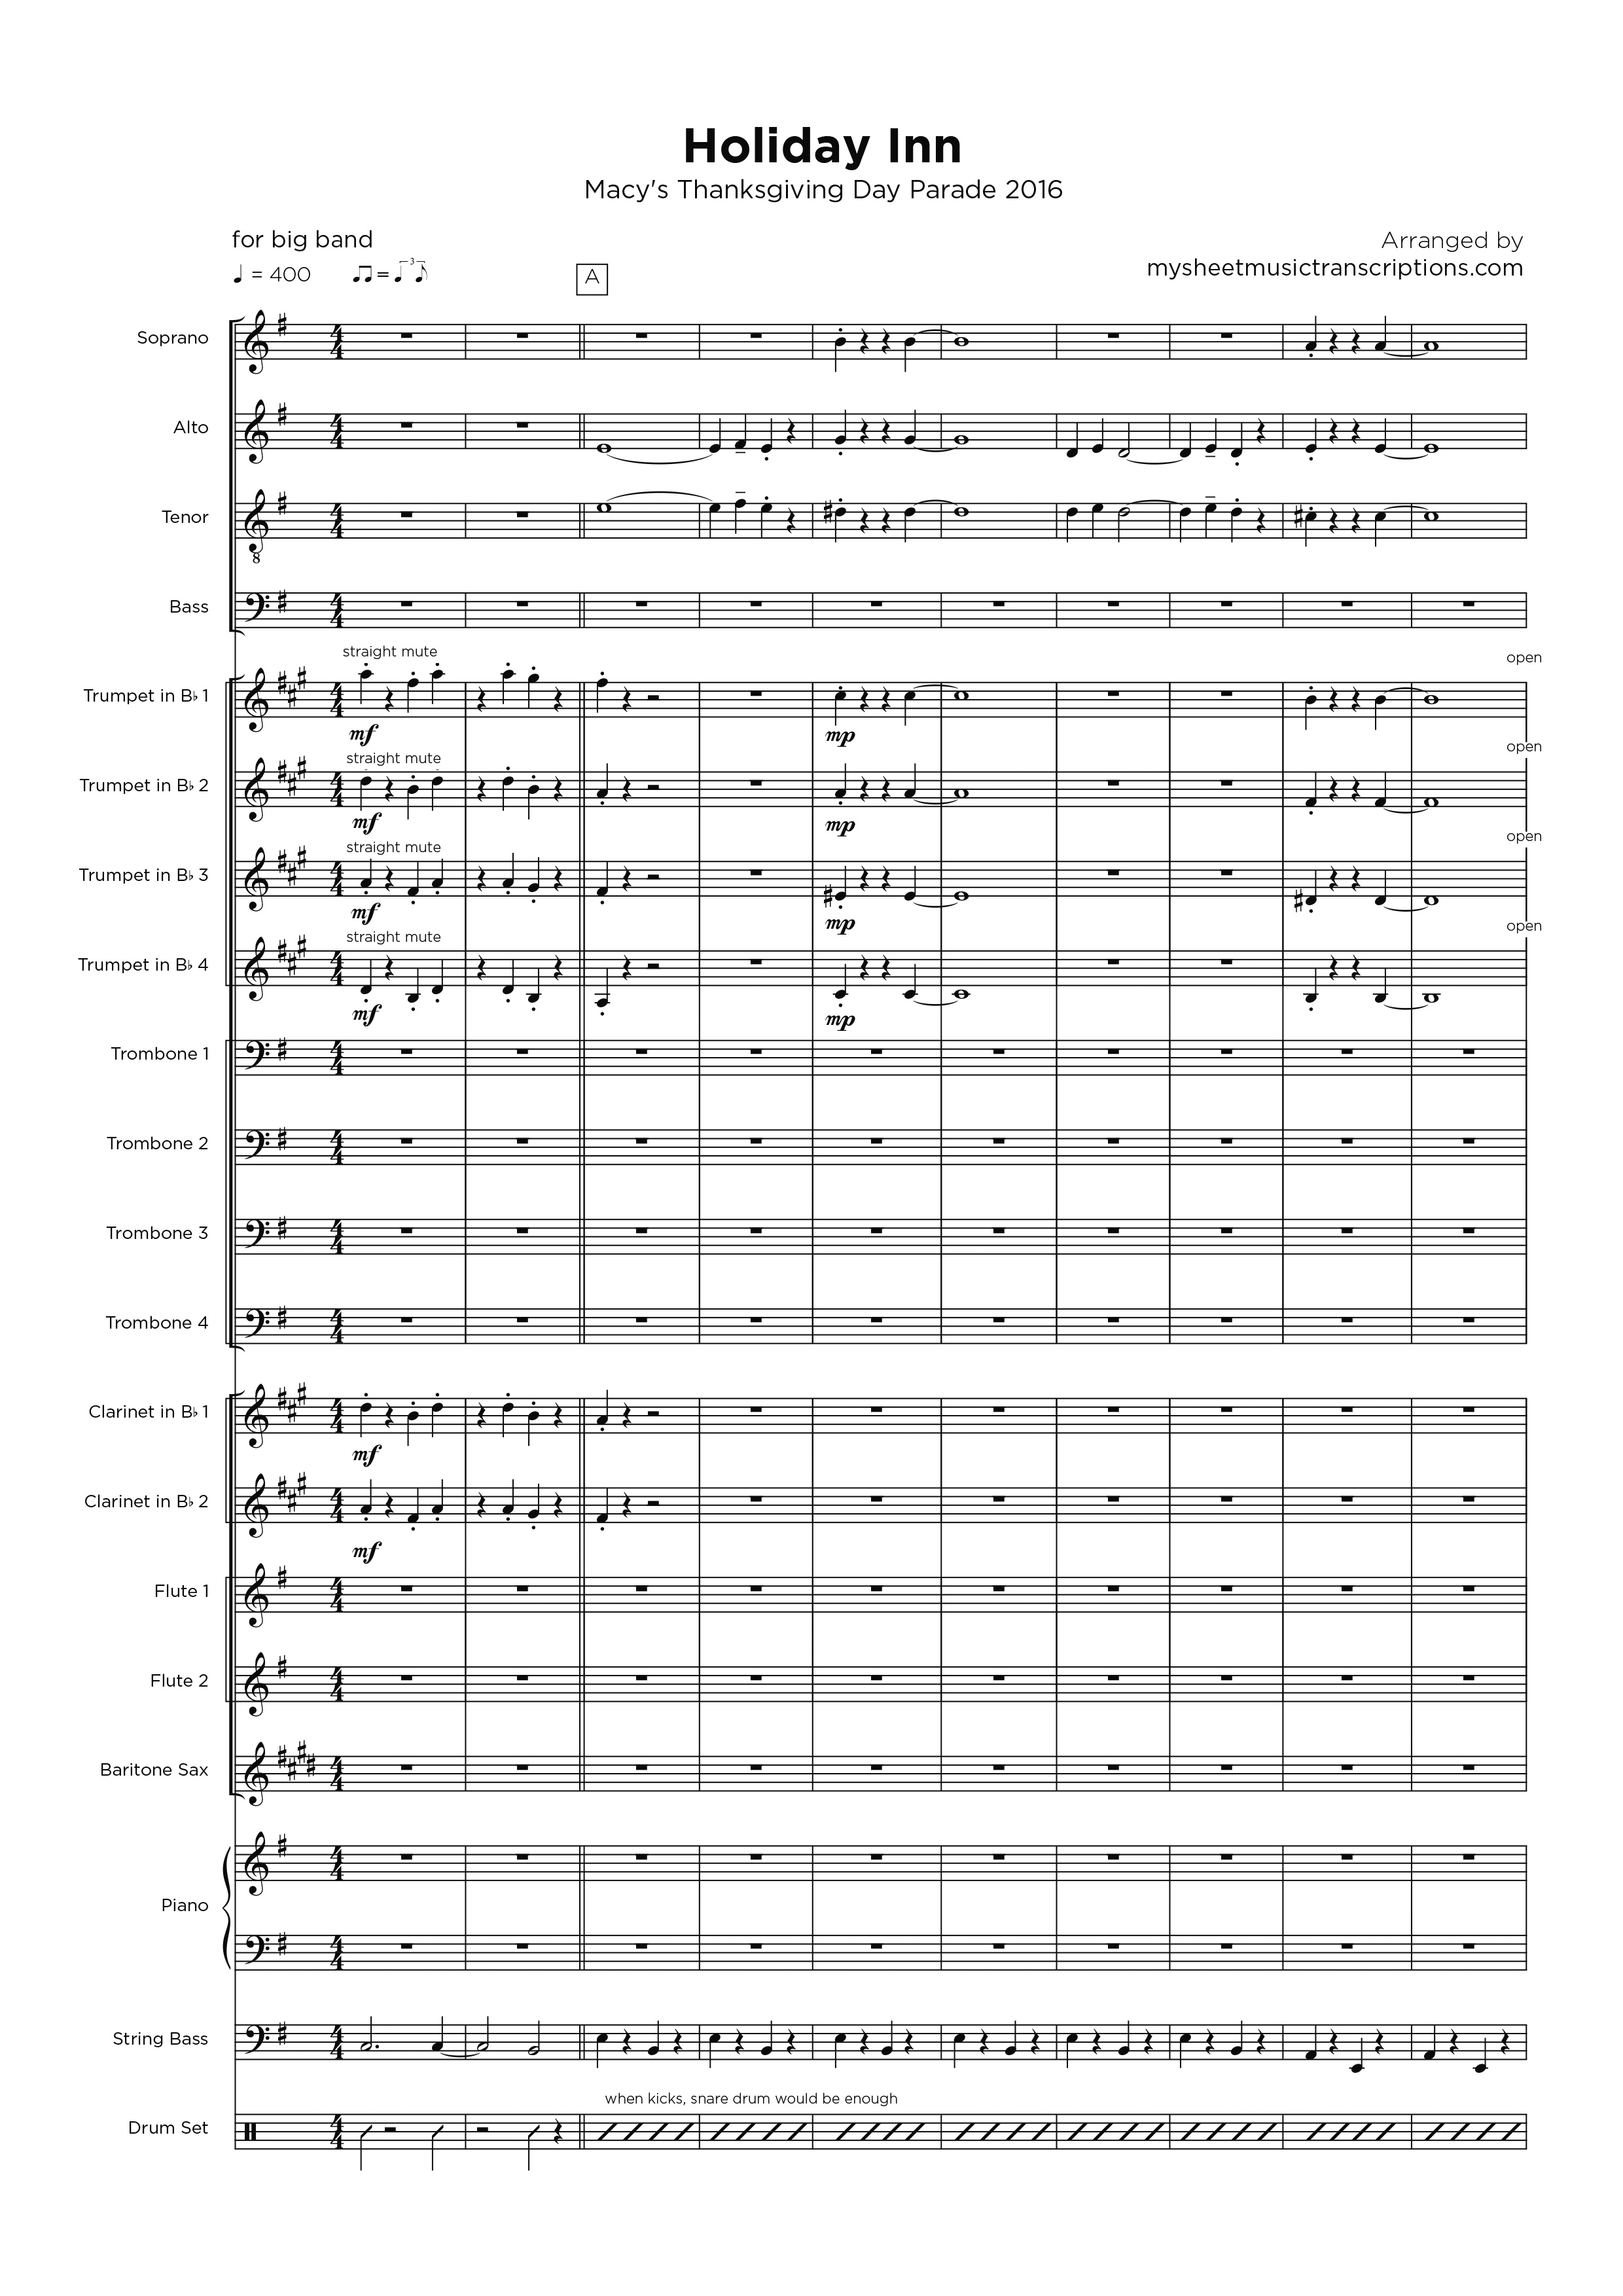 Holiday Inn - Macy's Thanksgiving Day Parade 2016 - Big Band transcription sheet